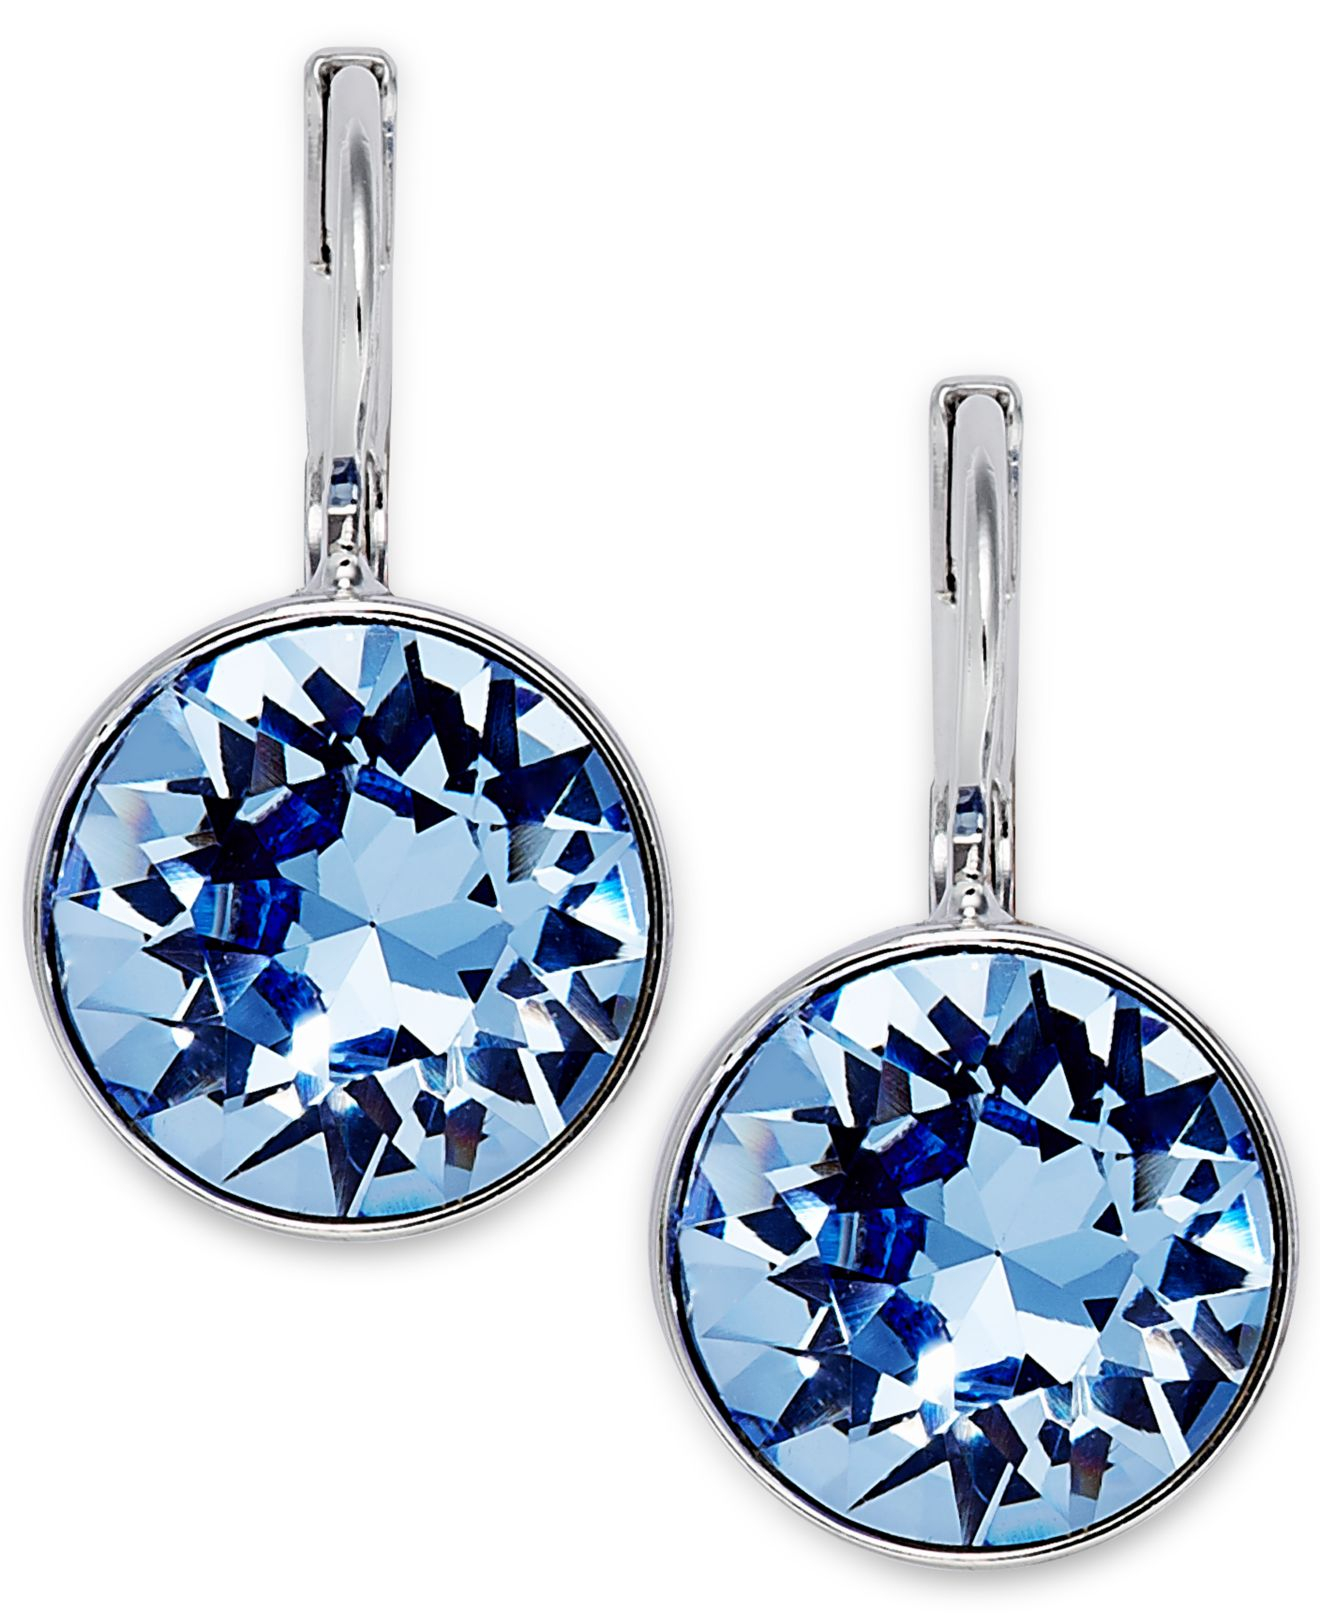 Rhodium Plated Light Shire Crystal Drop Earrings